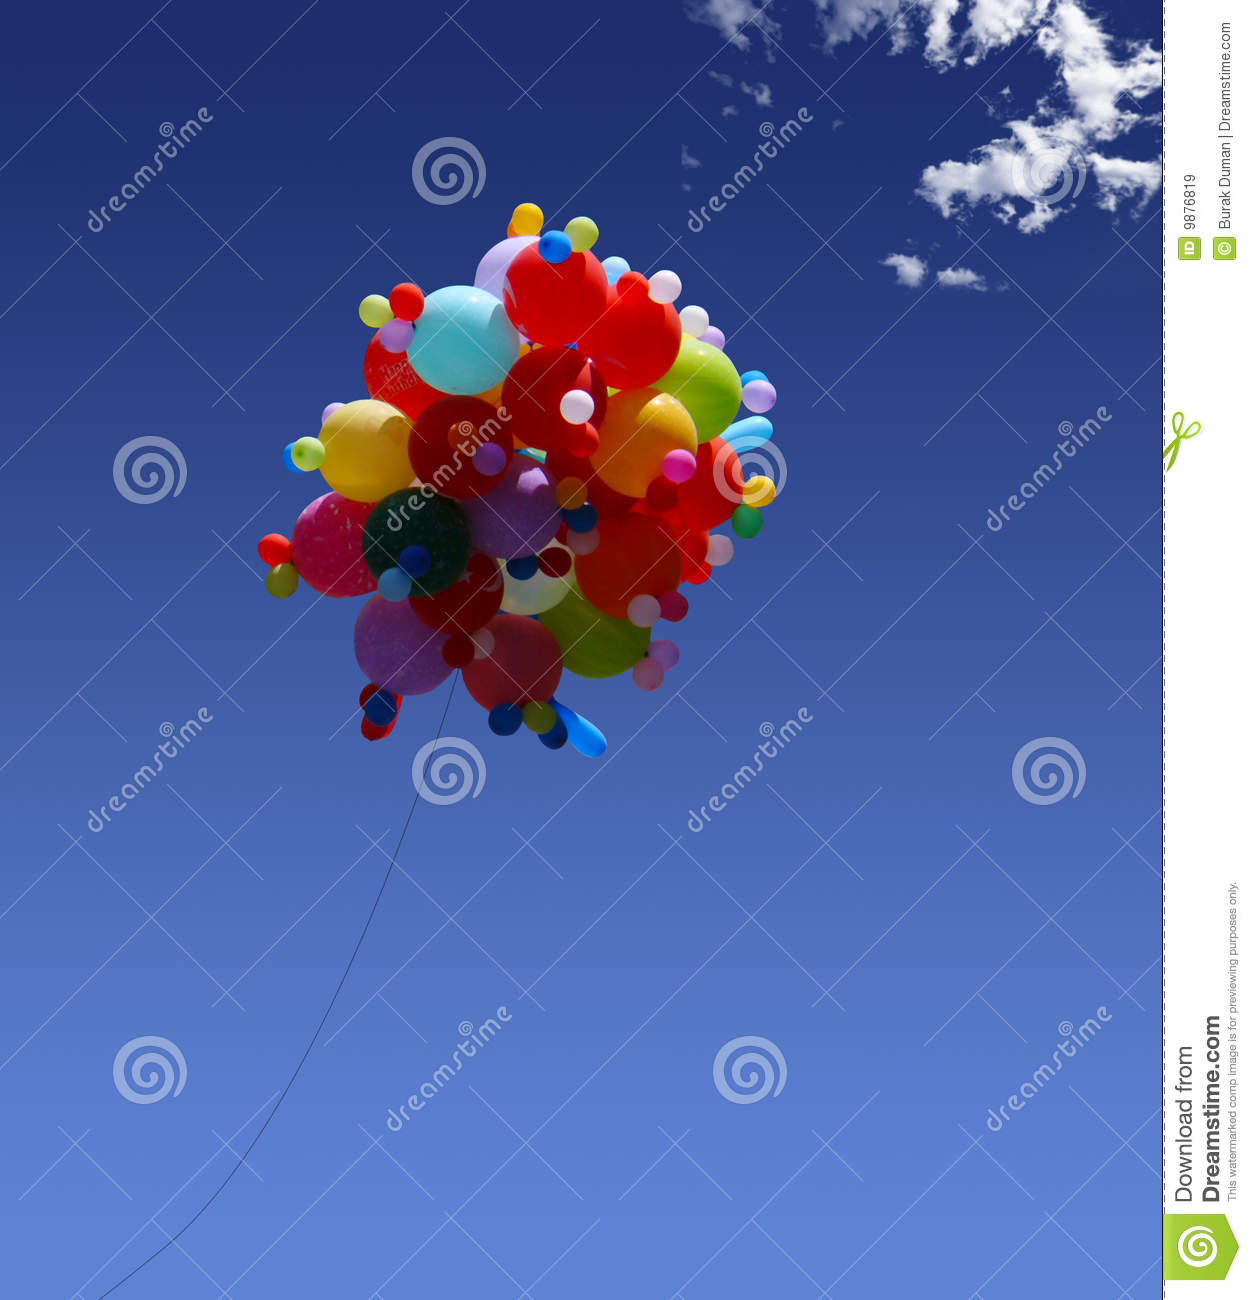 Helium Balloons Royalty Free Stock Images - Image: 9876819